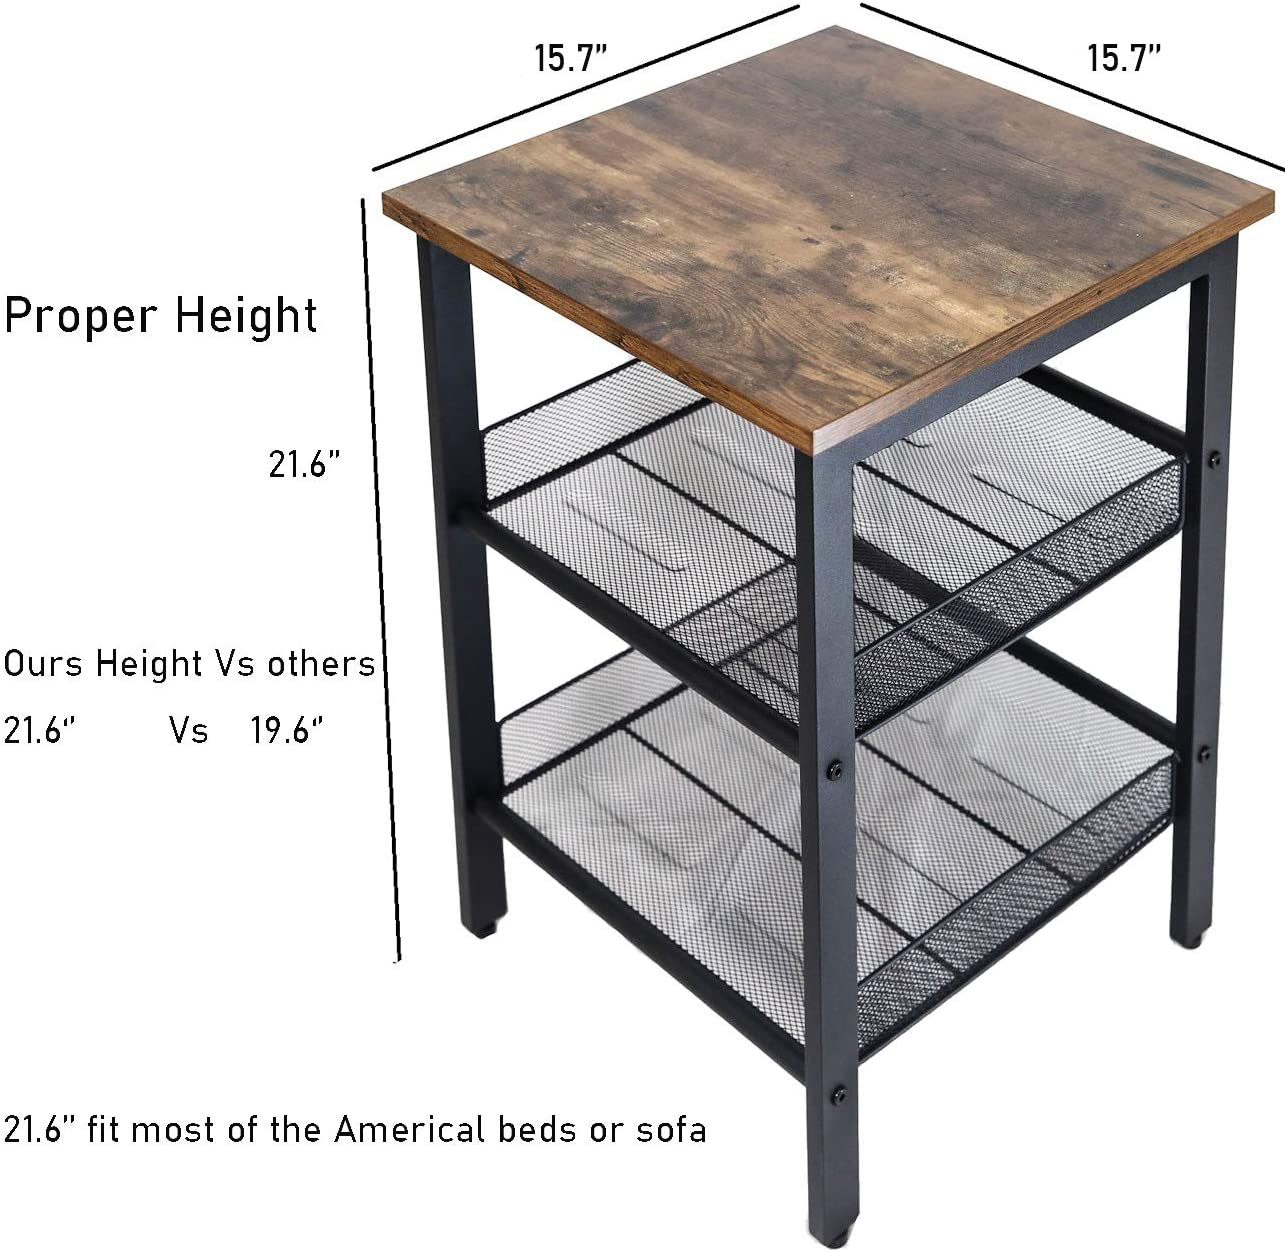 JPNTOYE End Table Set of 2 Living Room, Industrial Nightstand Table Bedroom with Mesh Shelves, 21.6 Inch Rustic Side Table, Wood Look Accent Furniture for Home Decor, Vintage Brown US Warehouse